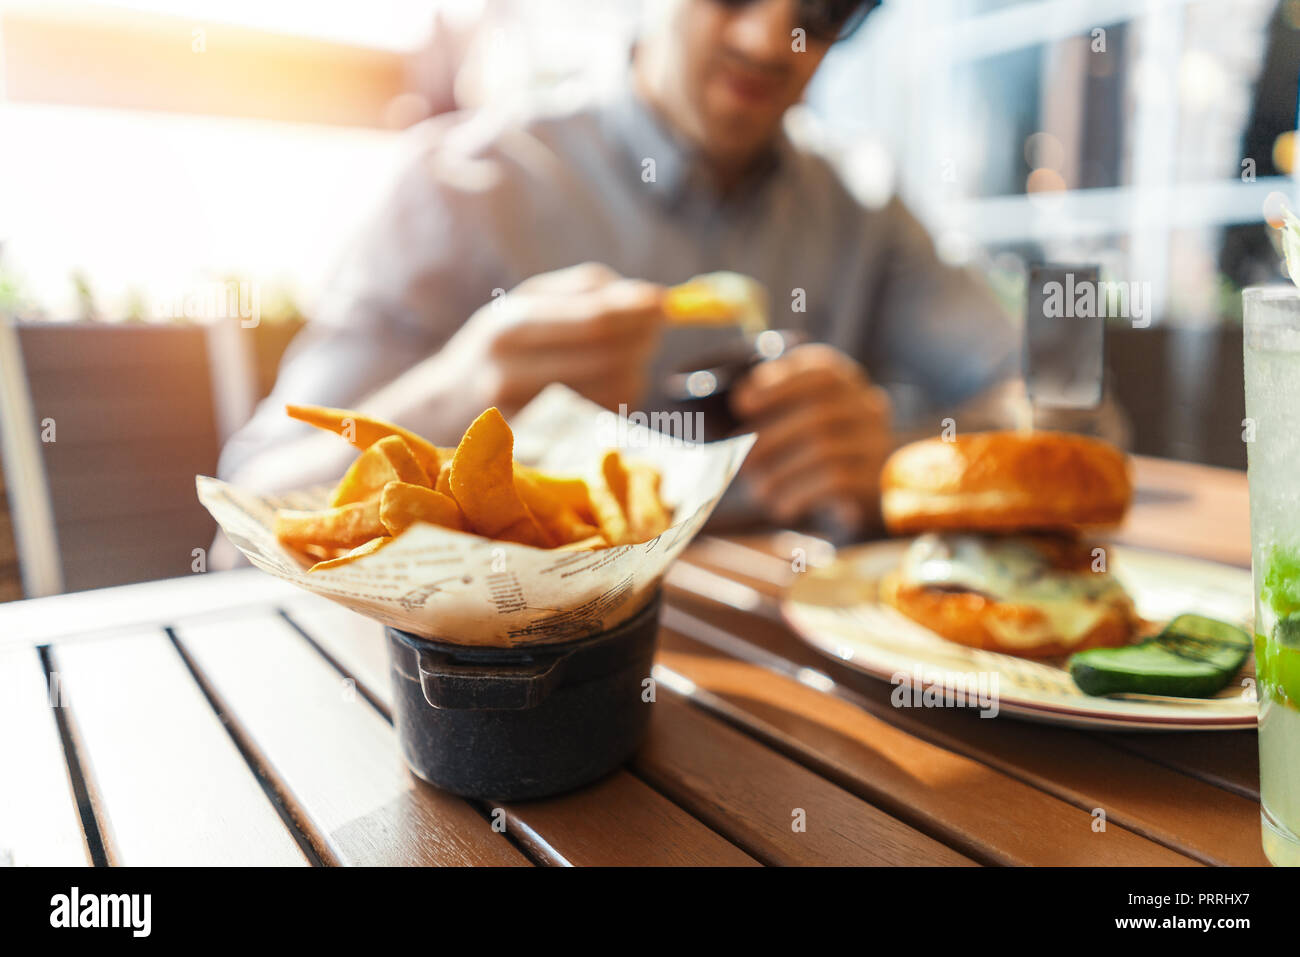 Close up of young attractive man eating french fries and burger at street cafe. - Stock Image